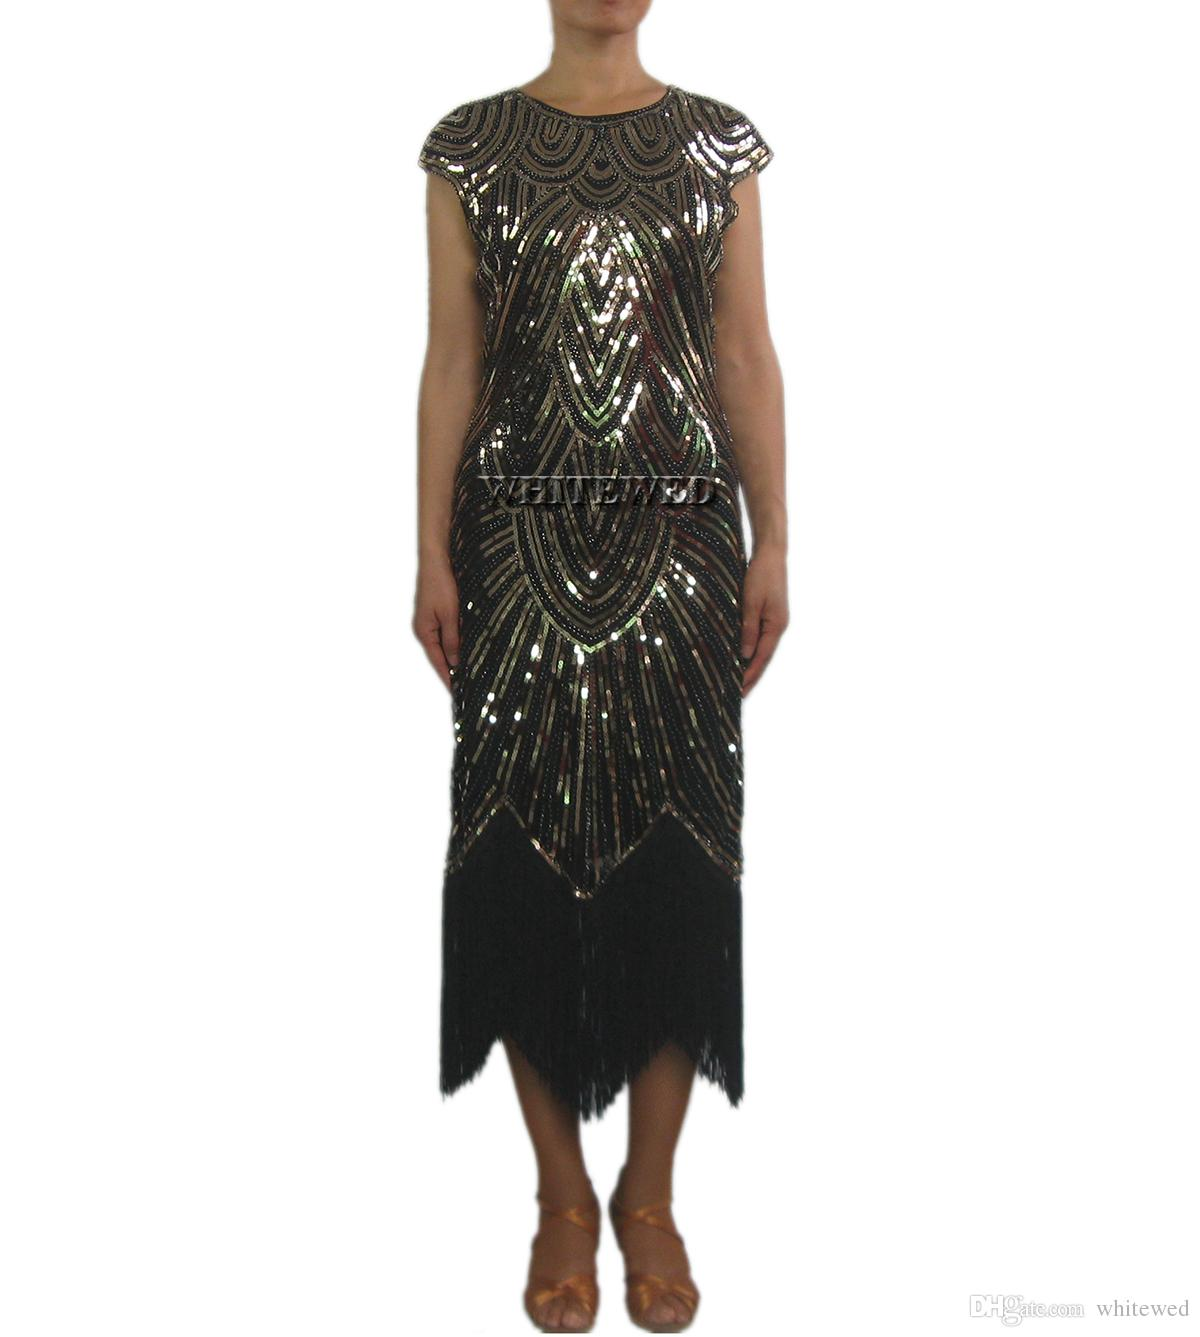 f5106daf80b Acquista Retrò In Rilievo 1920 Vintage Art Deco Cocktail Flapper Abiti  Costume Long Jazz Era Flappers Grande Gatsby Costume Dress Style In 1920 s  Women A ...